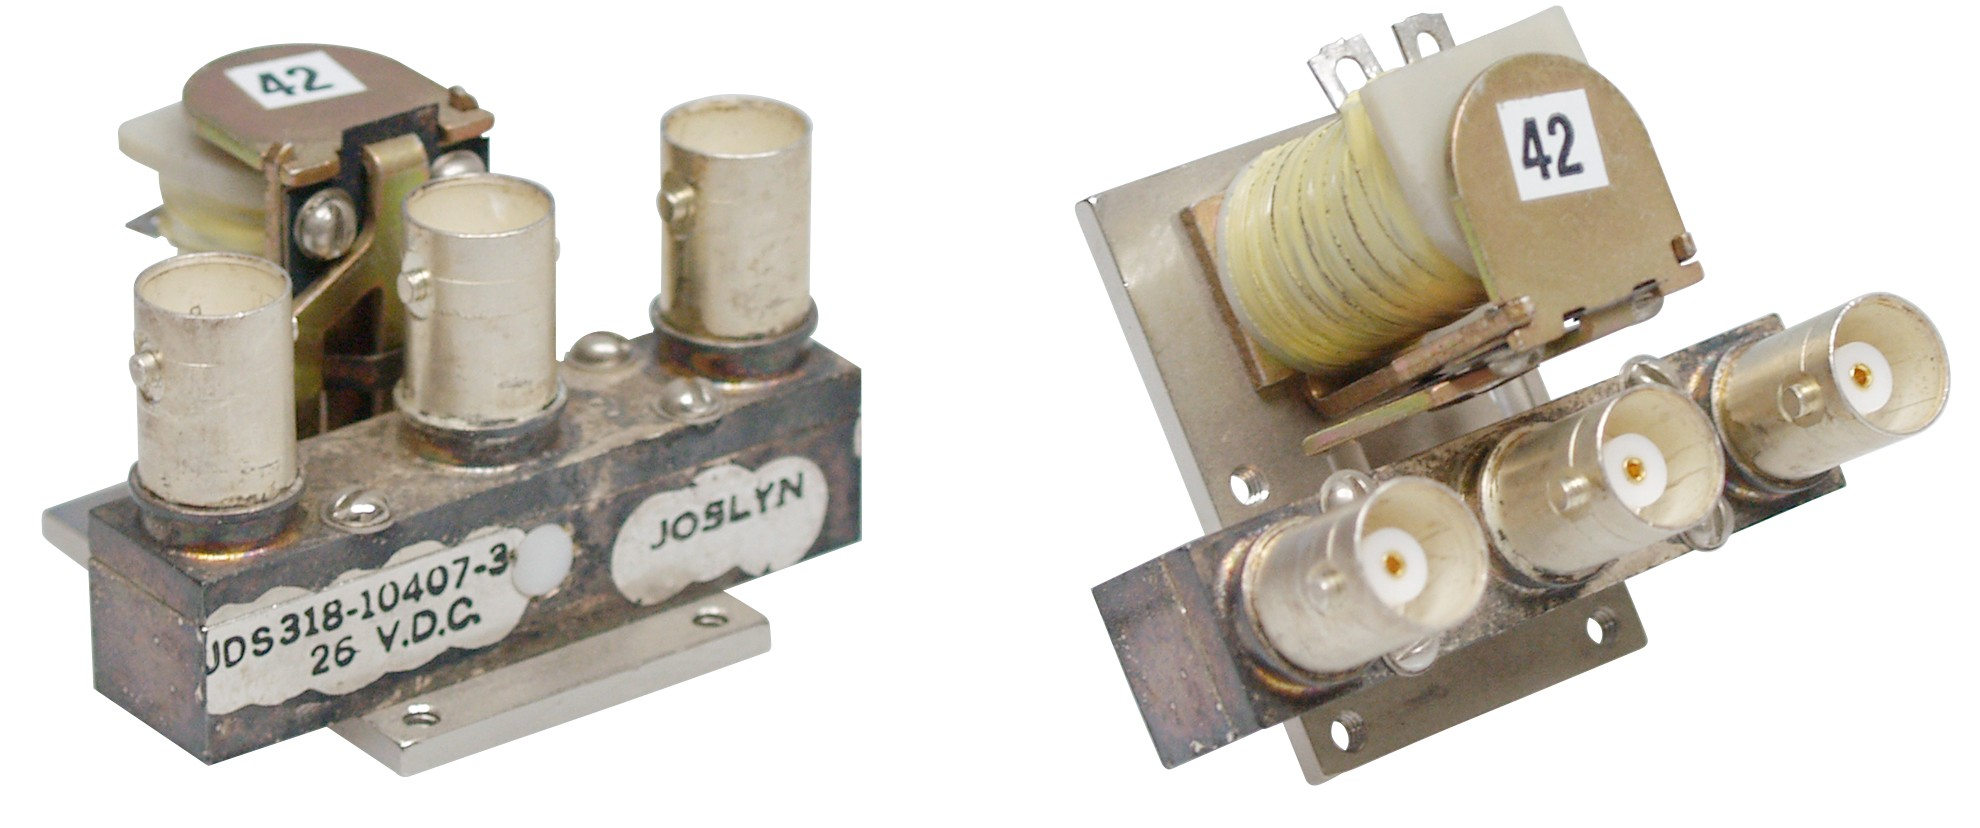 318-010407-3 Coaxial relay,26vdc spdt joslyn